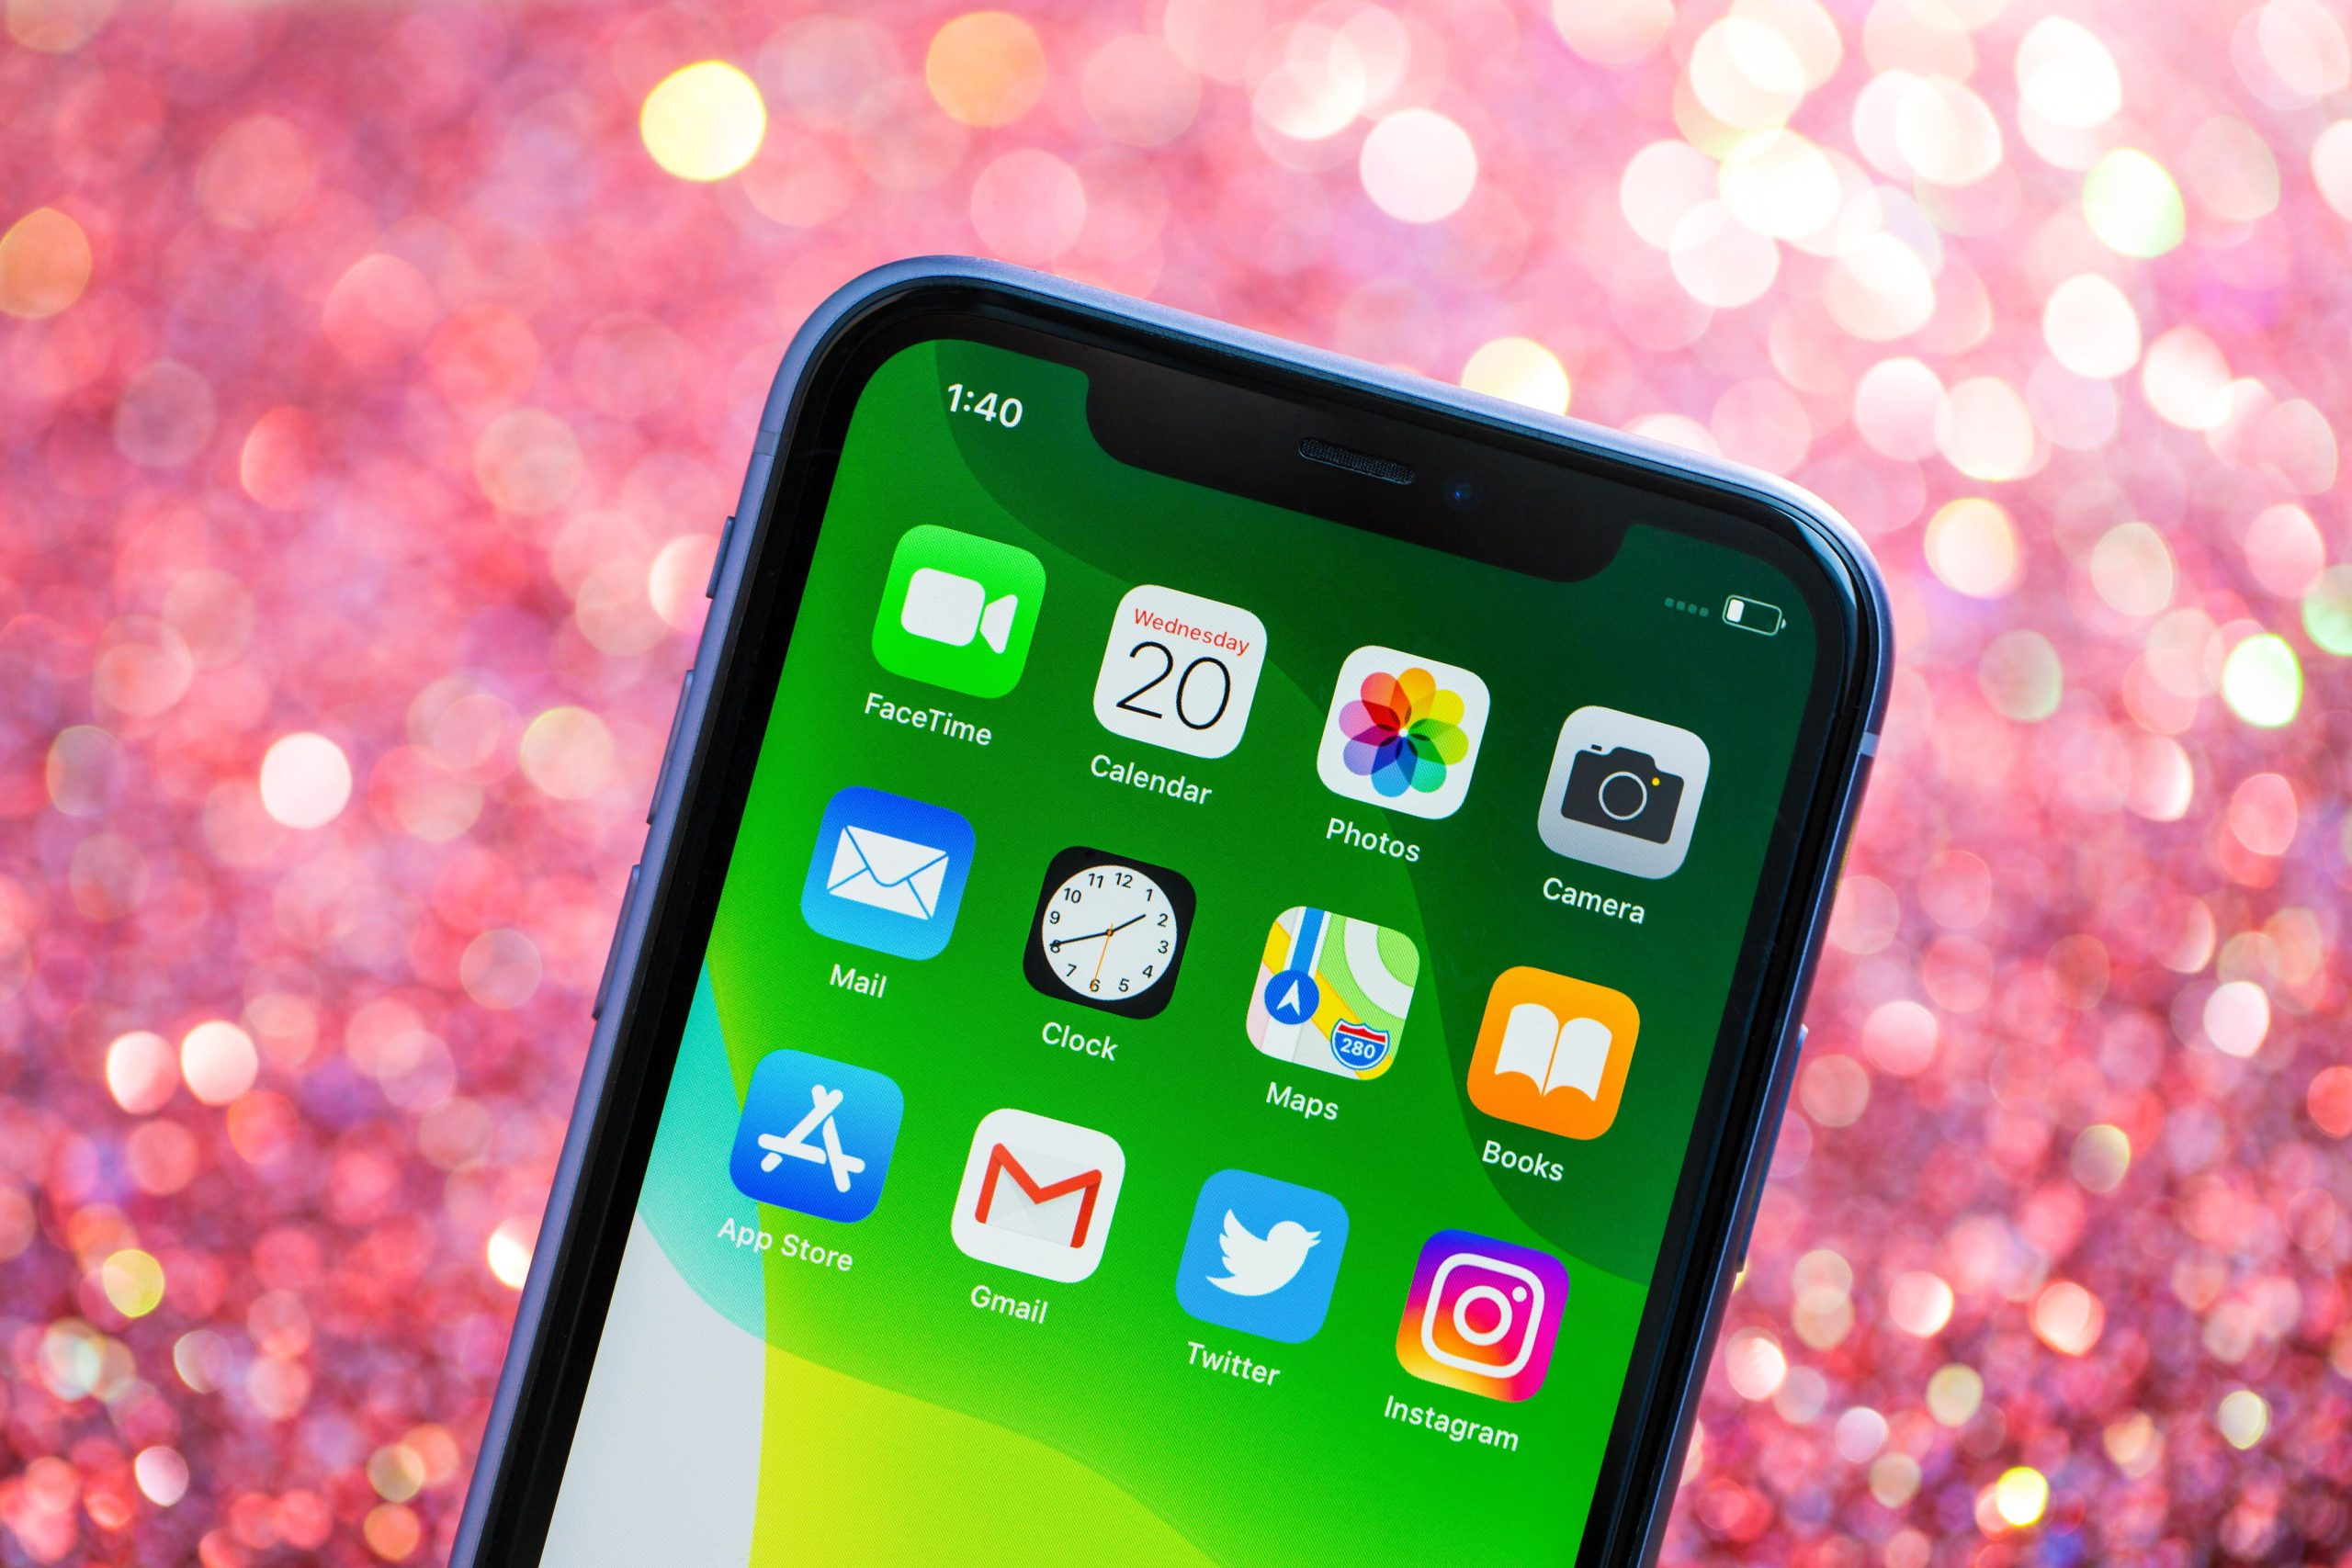 Tech News: Apple Black Friday 2019: Best deals available now (just updated) – CNET